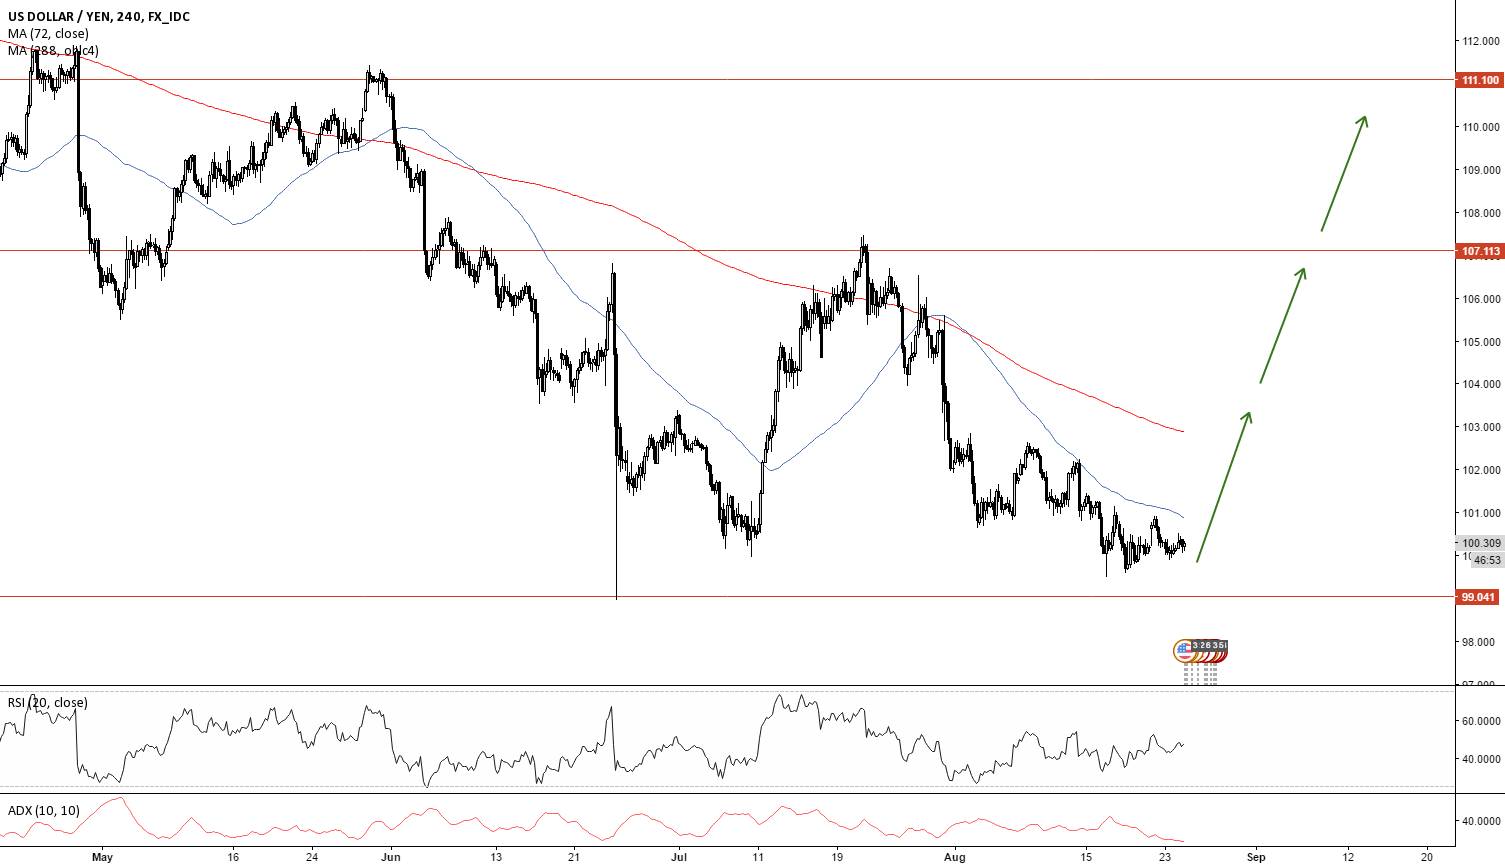 USDJPY 10% Move Coming...